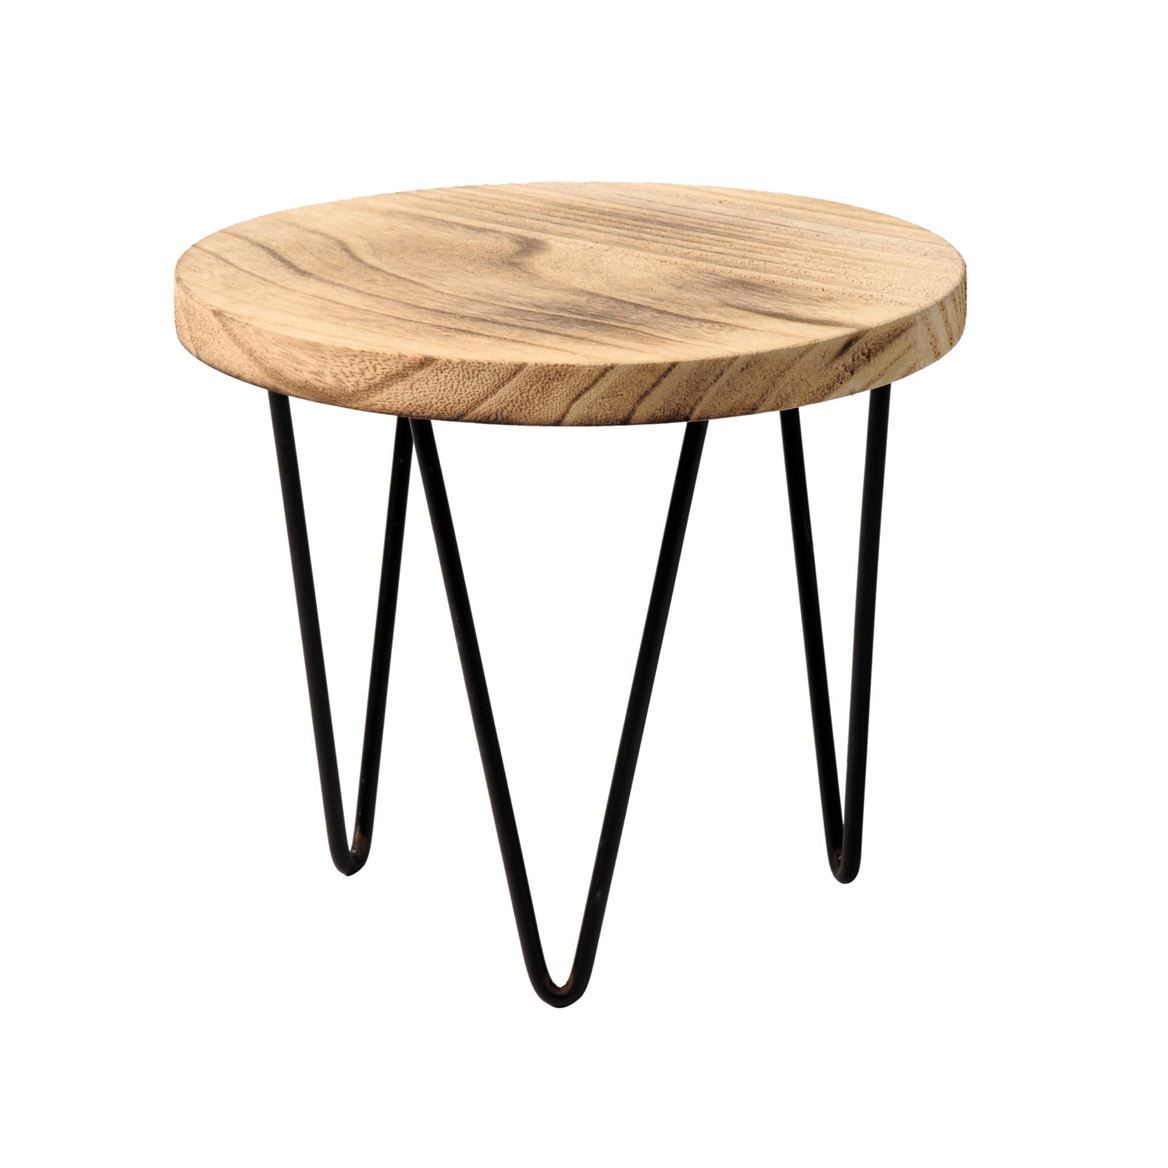 Table Pour 6 6 99 Woody Table Pour Plantes Salon Mobilier De Salon Deco